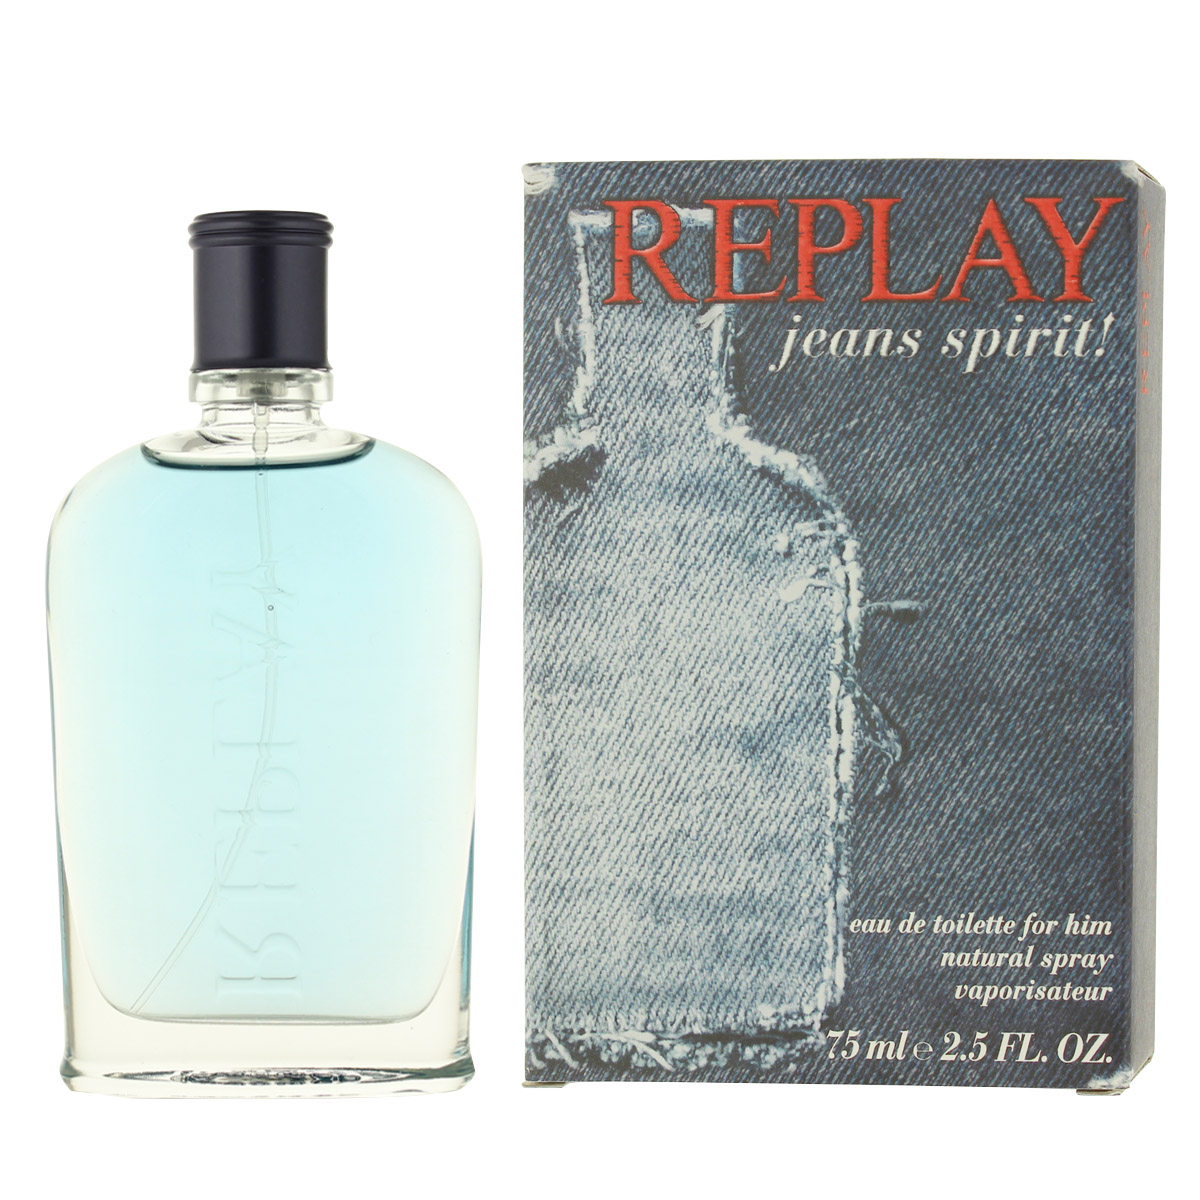 Replay Jeans Spirit! for Him Eau De Toilette 75 ml (man) 66973